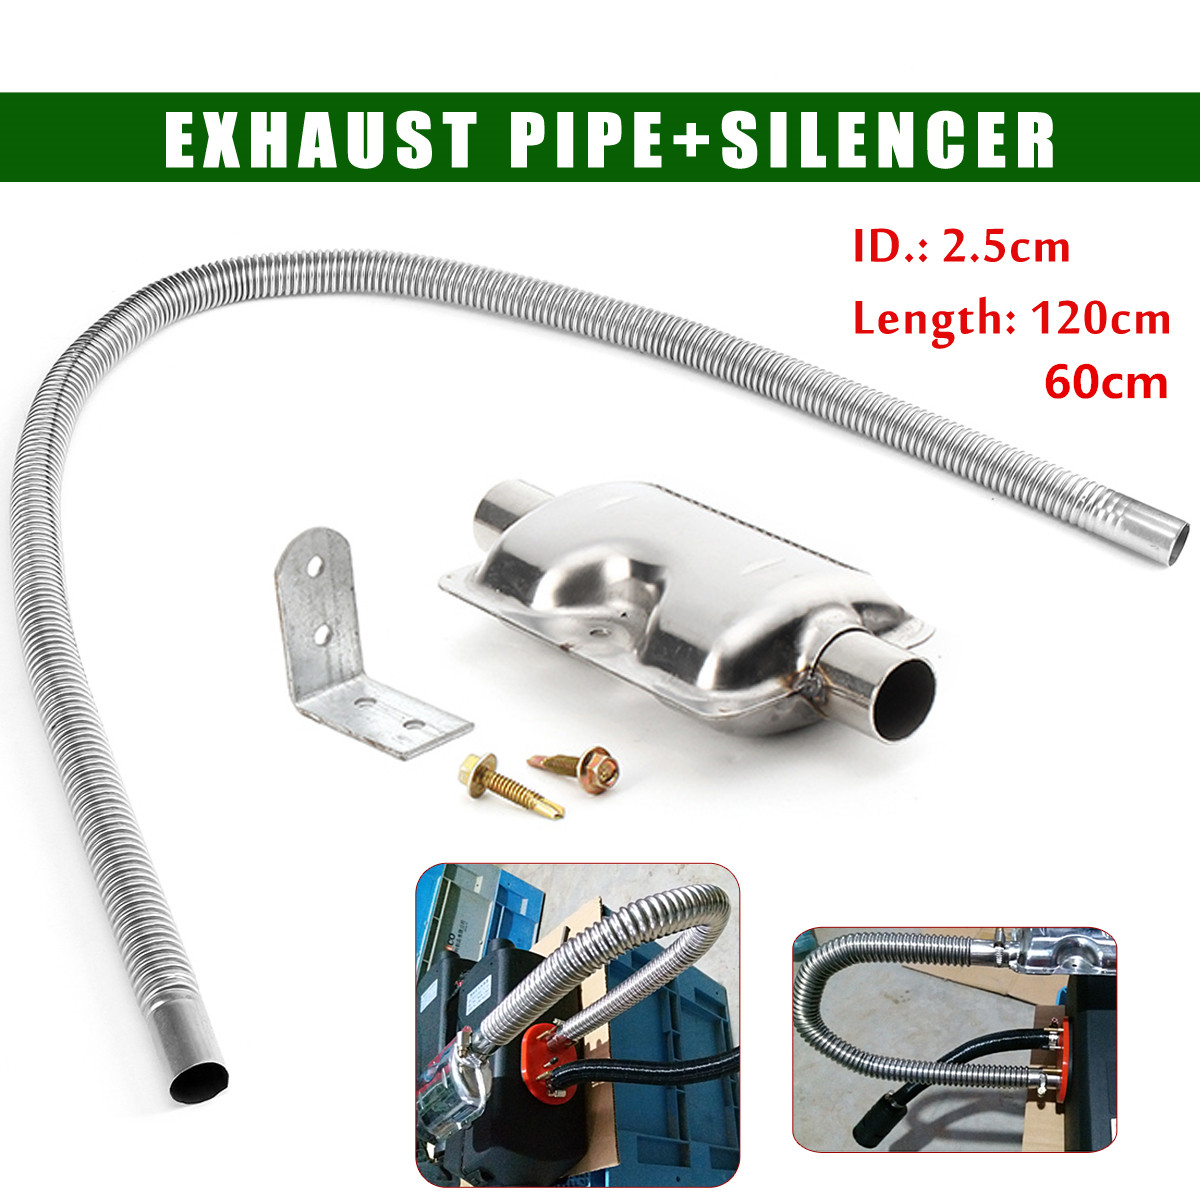 120cm Stainless Steel Exhaust Muffler Silencer Clamps Bracket Gas Vent Hose Portable Pipe Silence For Air Diesels Car Heater Kit high quality intake silencer and exhaust muffler for air parking heater